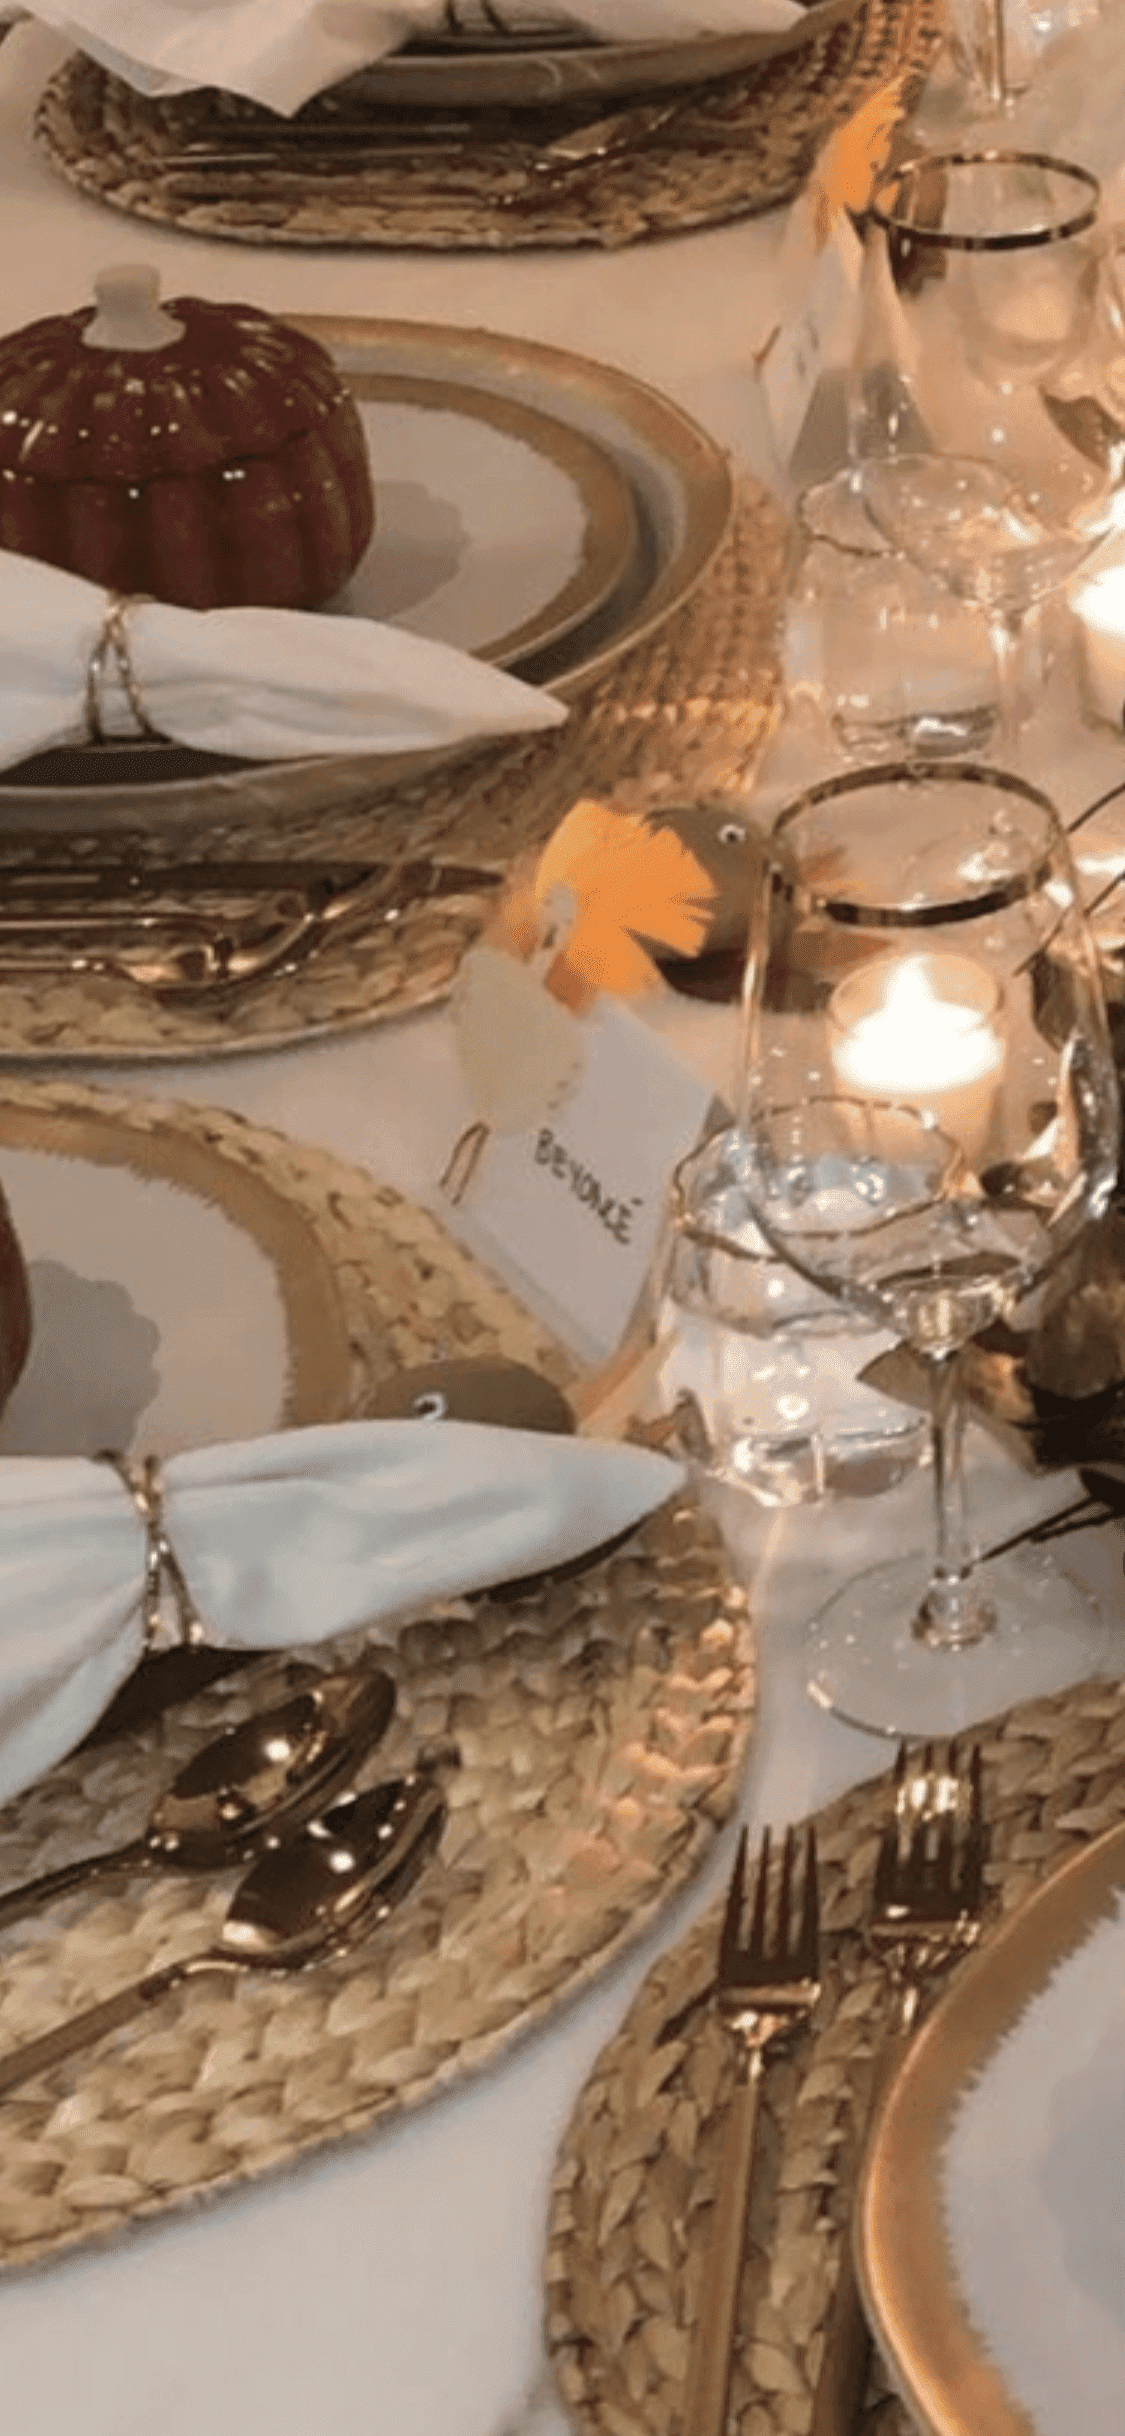 """Kylie Jenner's incredible table setting complete with the """"Beyonce"""" place card/ Source: Instagram/ KylieJenner"""